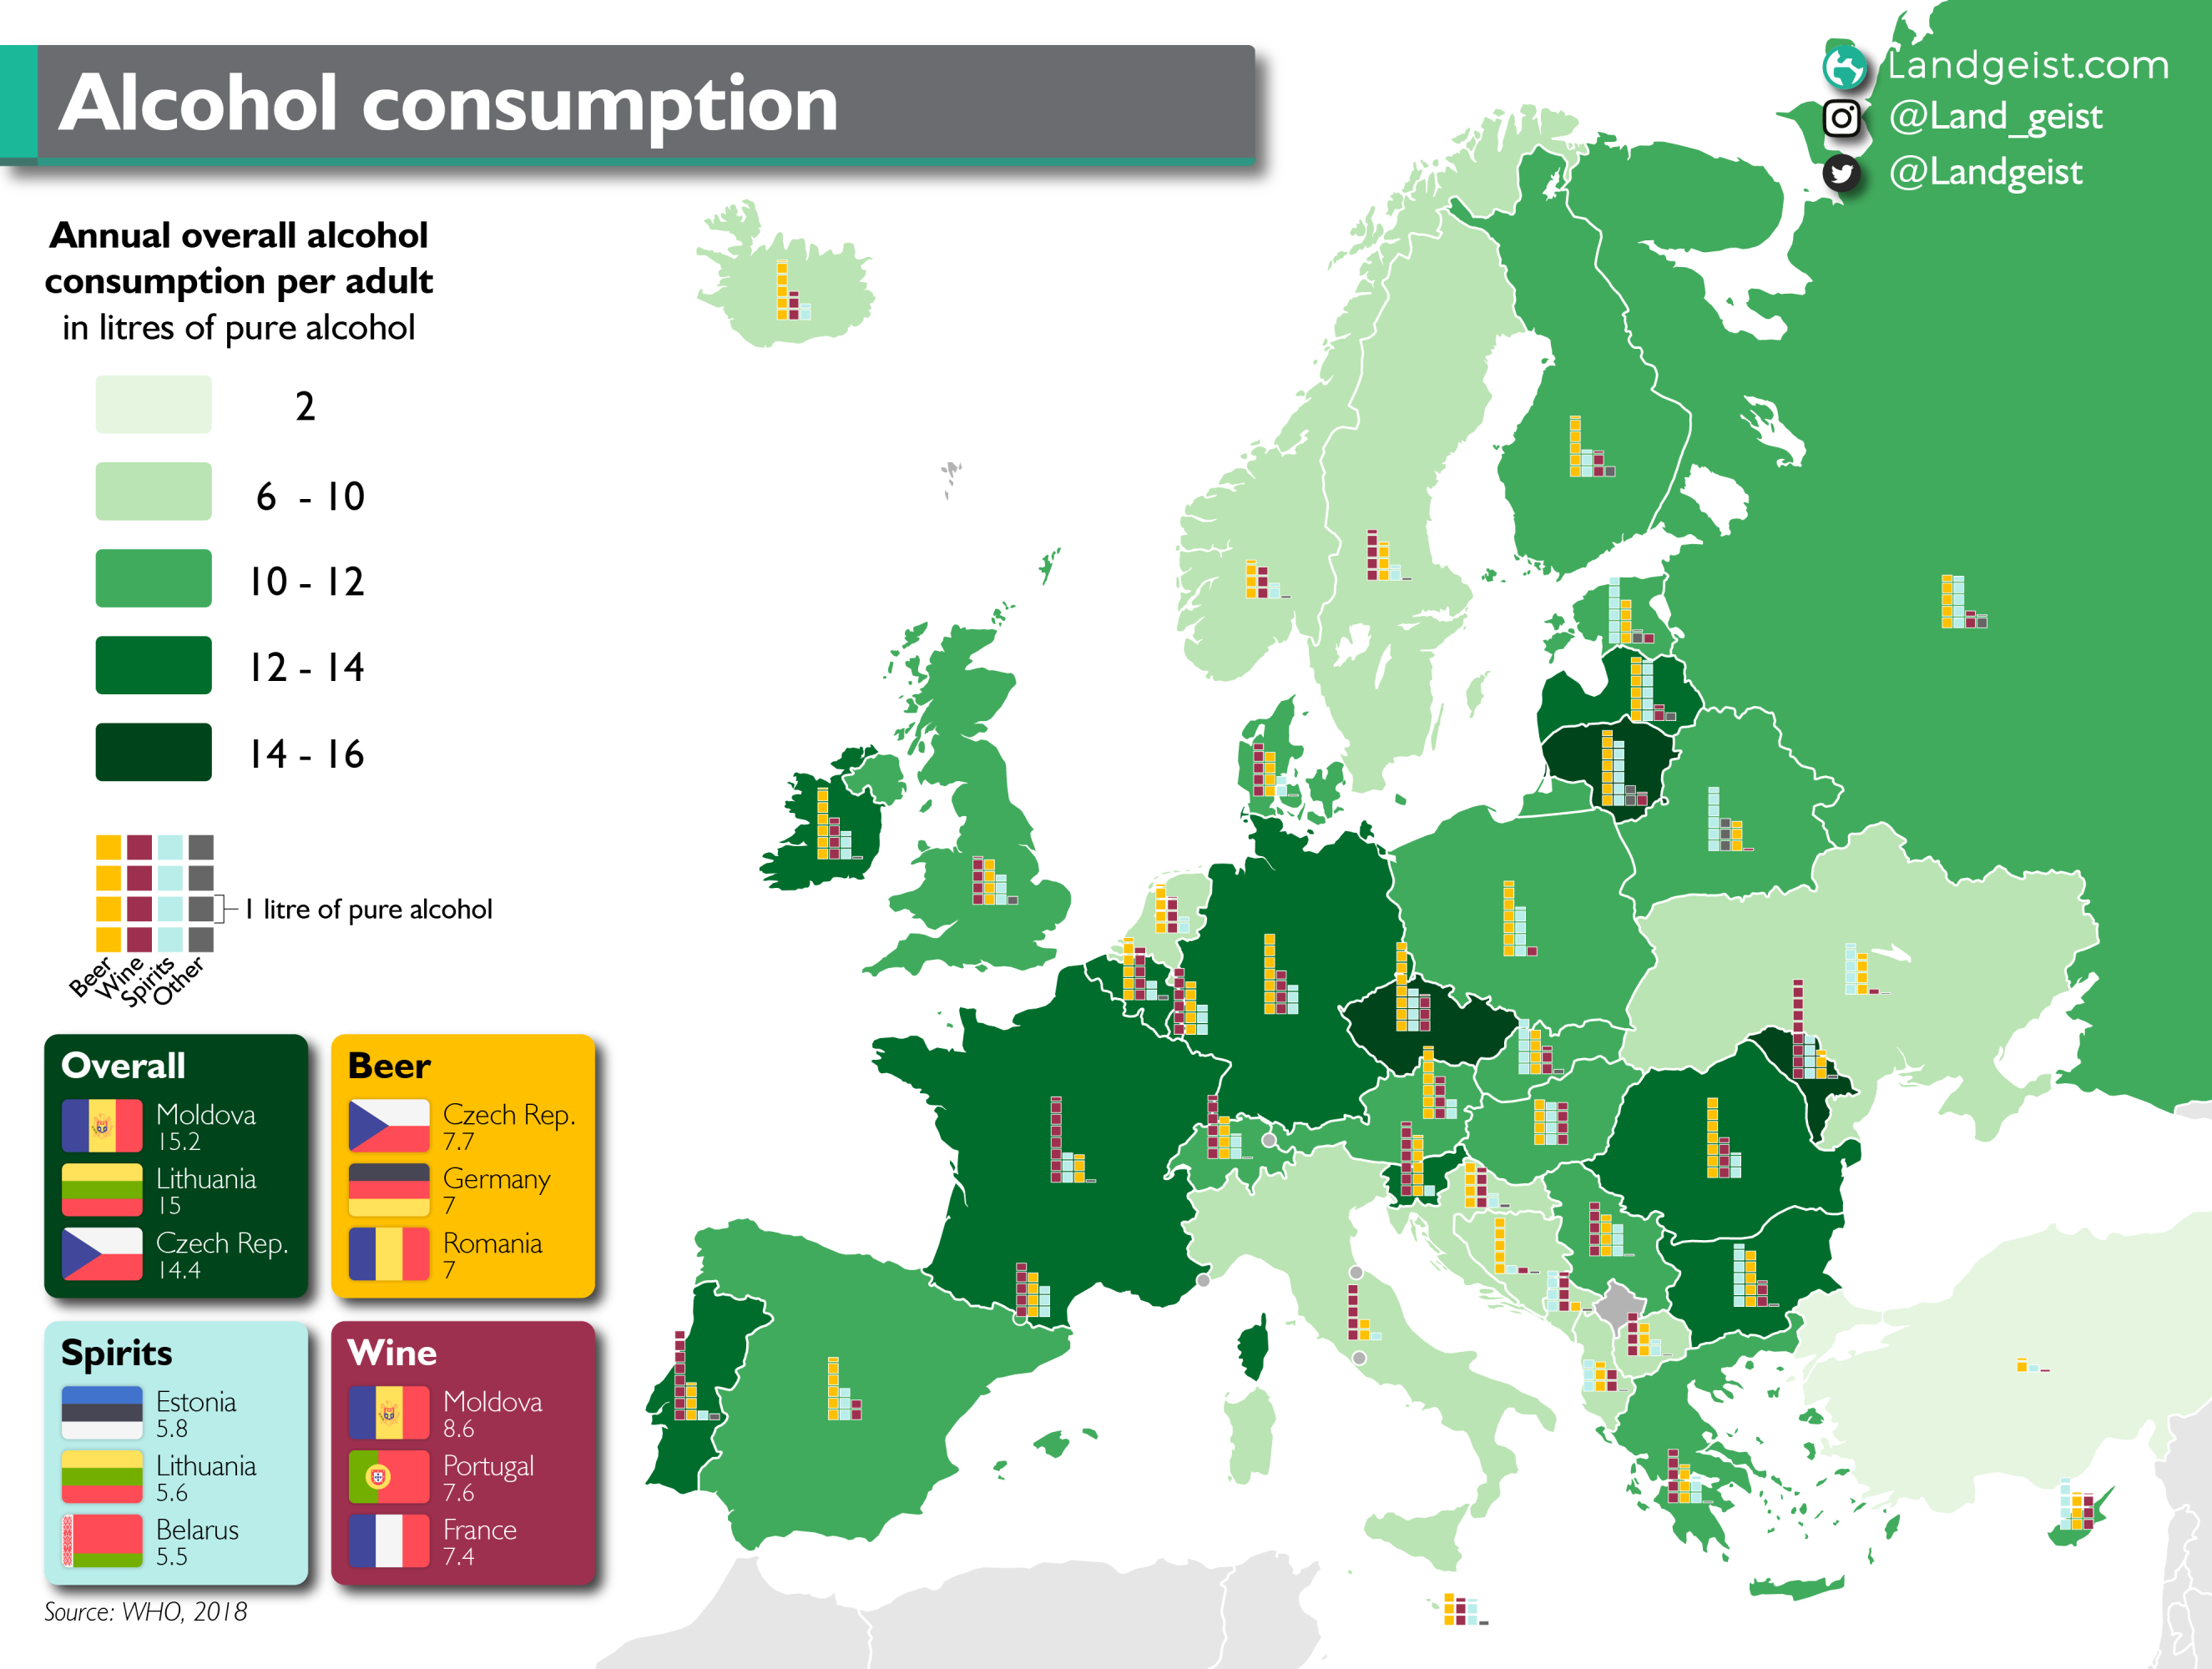 Detailed map of the alcohol consumption in Europe.